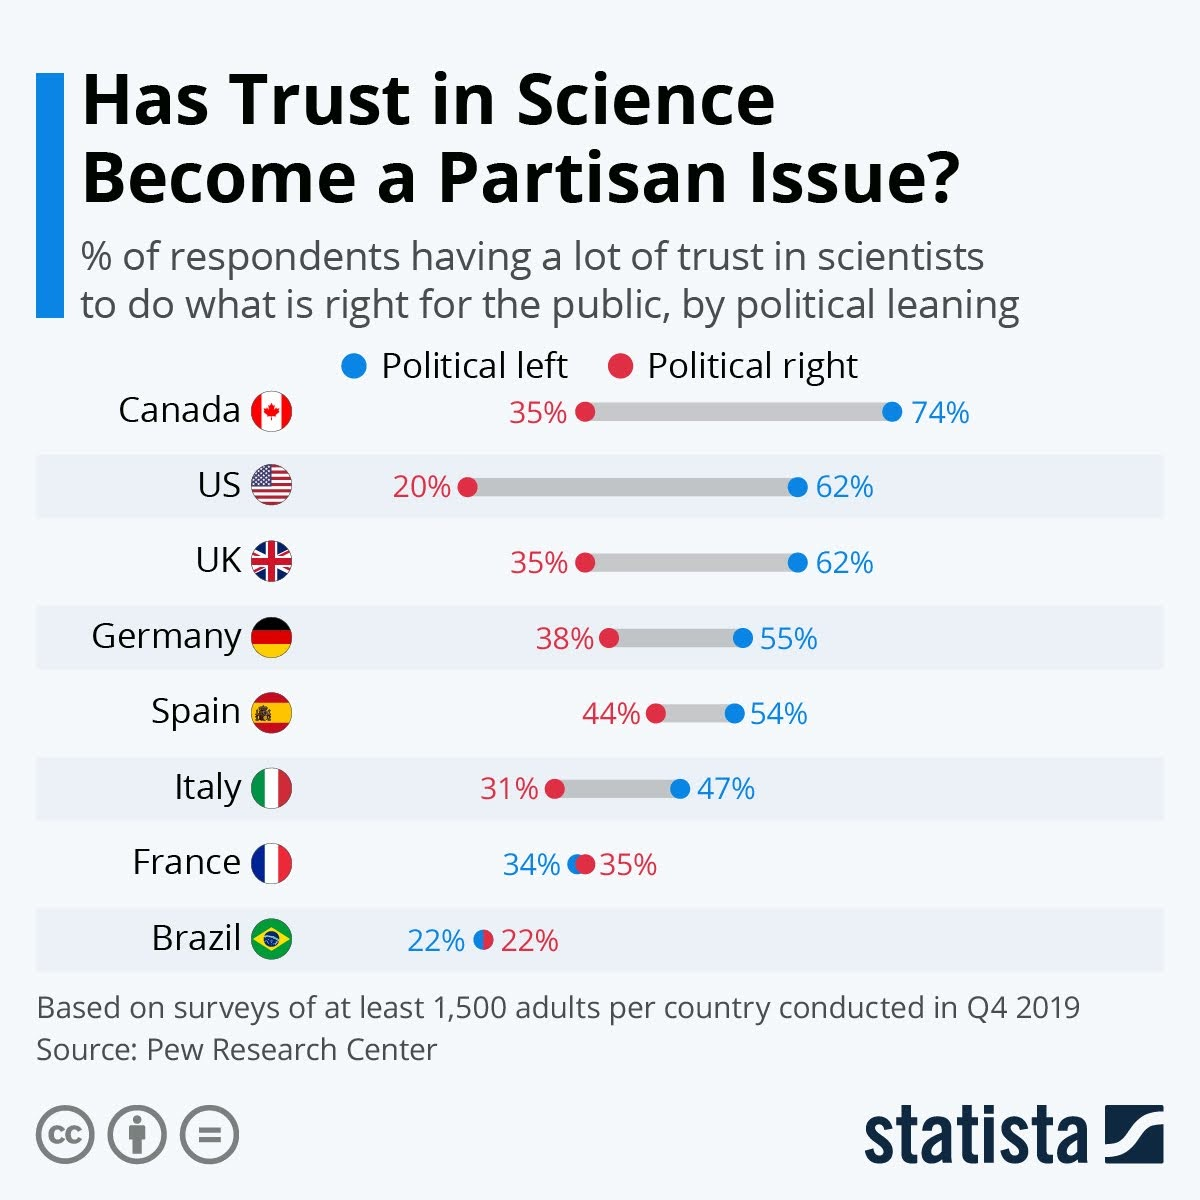 has-trust-in-science-become-a-partisan-issue-infographic